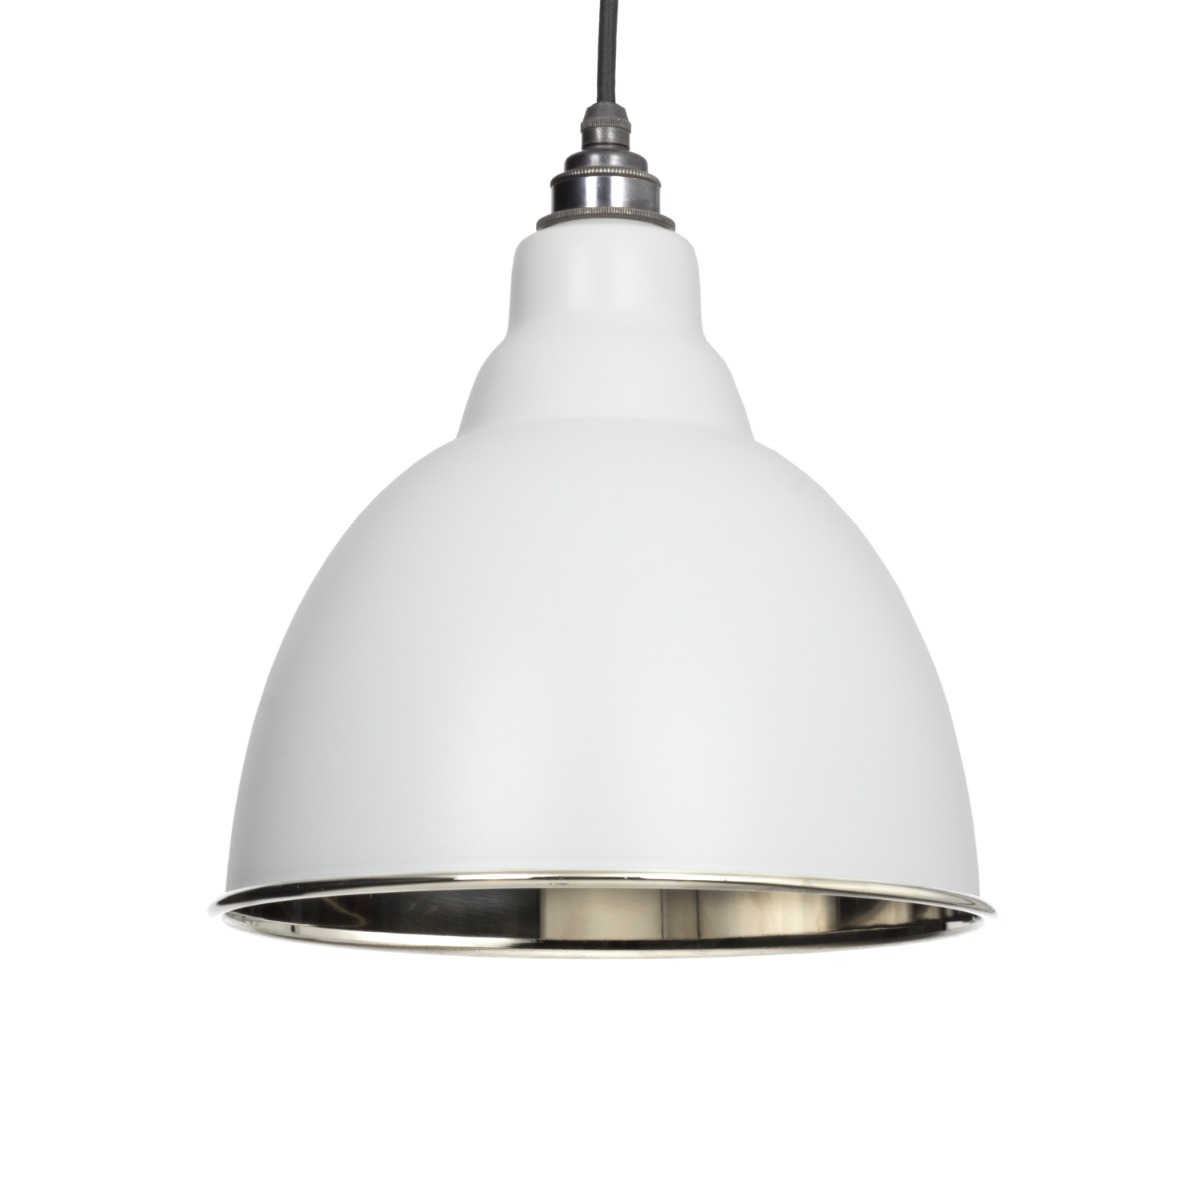 From The Anvil Light Grey Smooth Nickel Brindley Pendant 49504LG